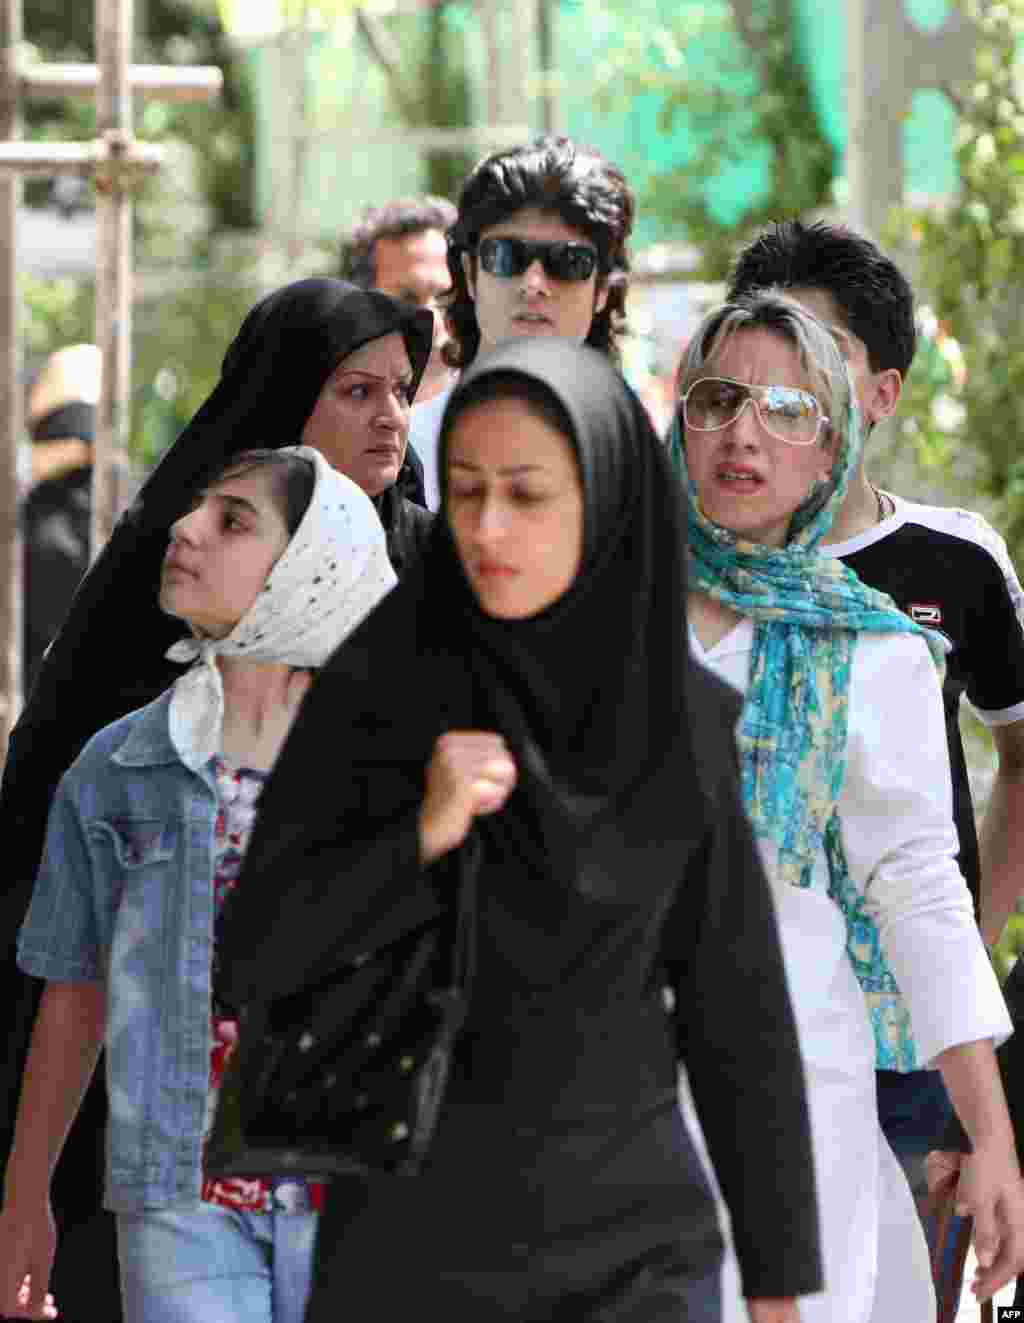 Iranian women in traditional and modern dress walk in Tehran. Some women say they dress conservatively in public but more daringly in their private lives.